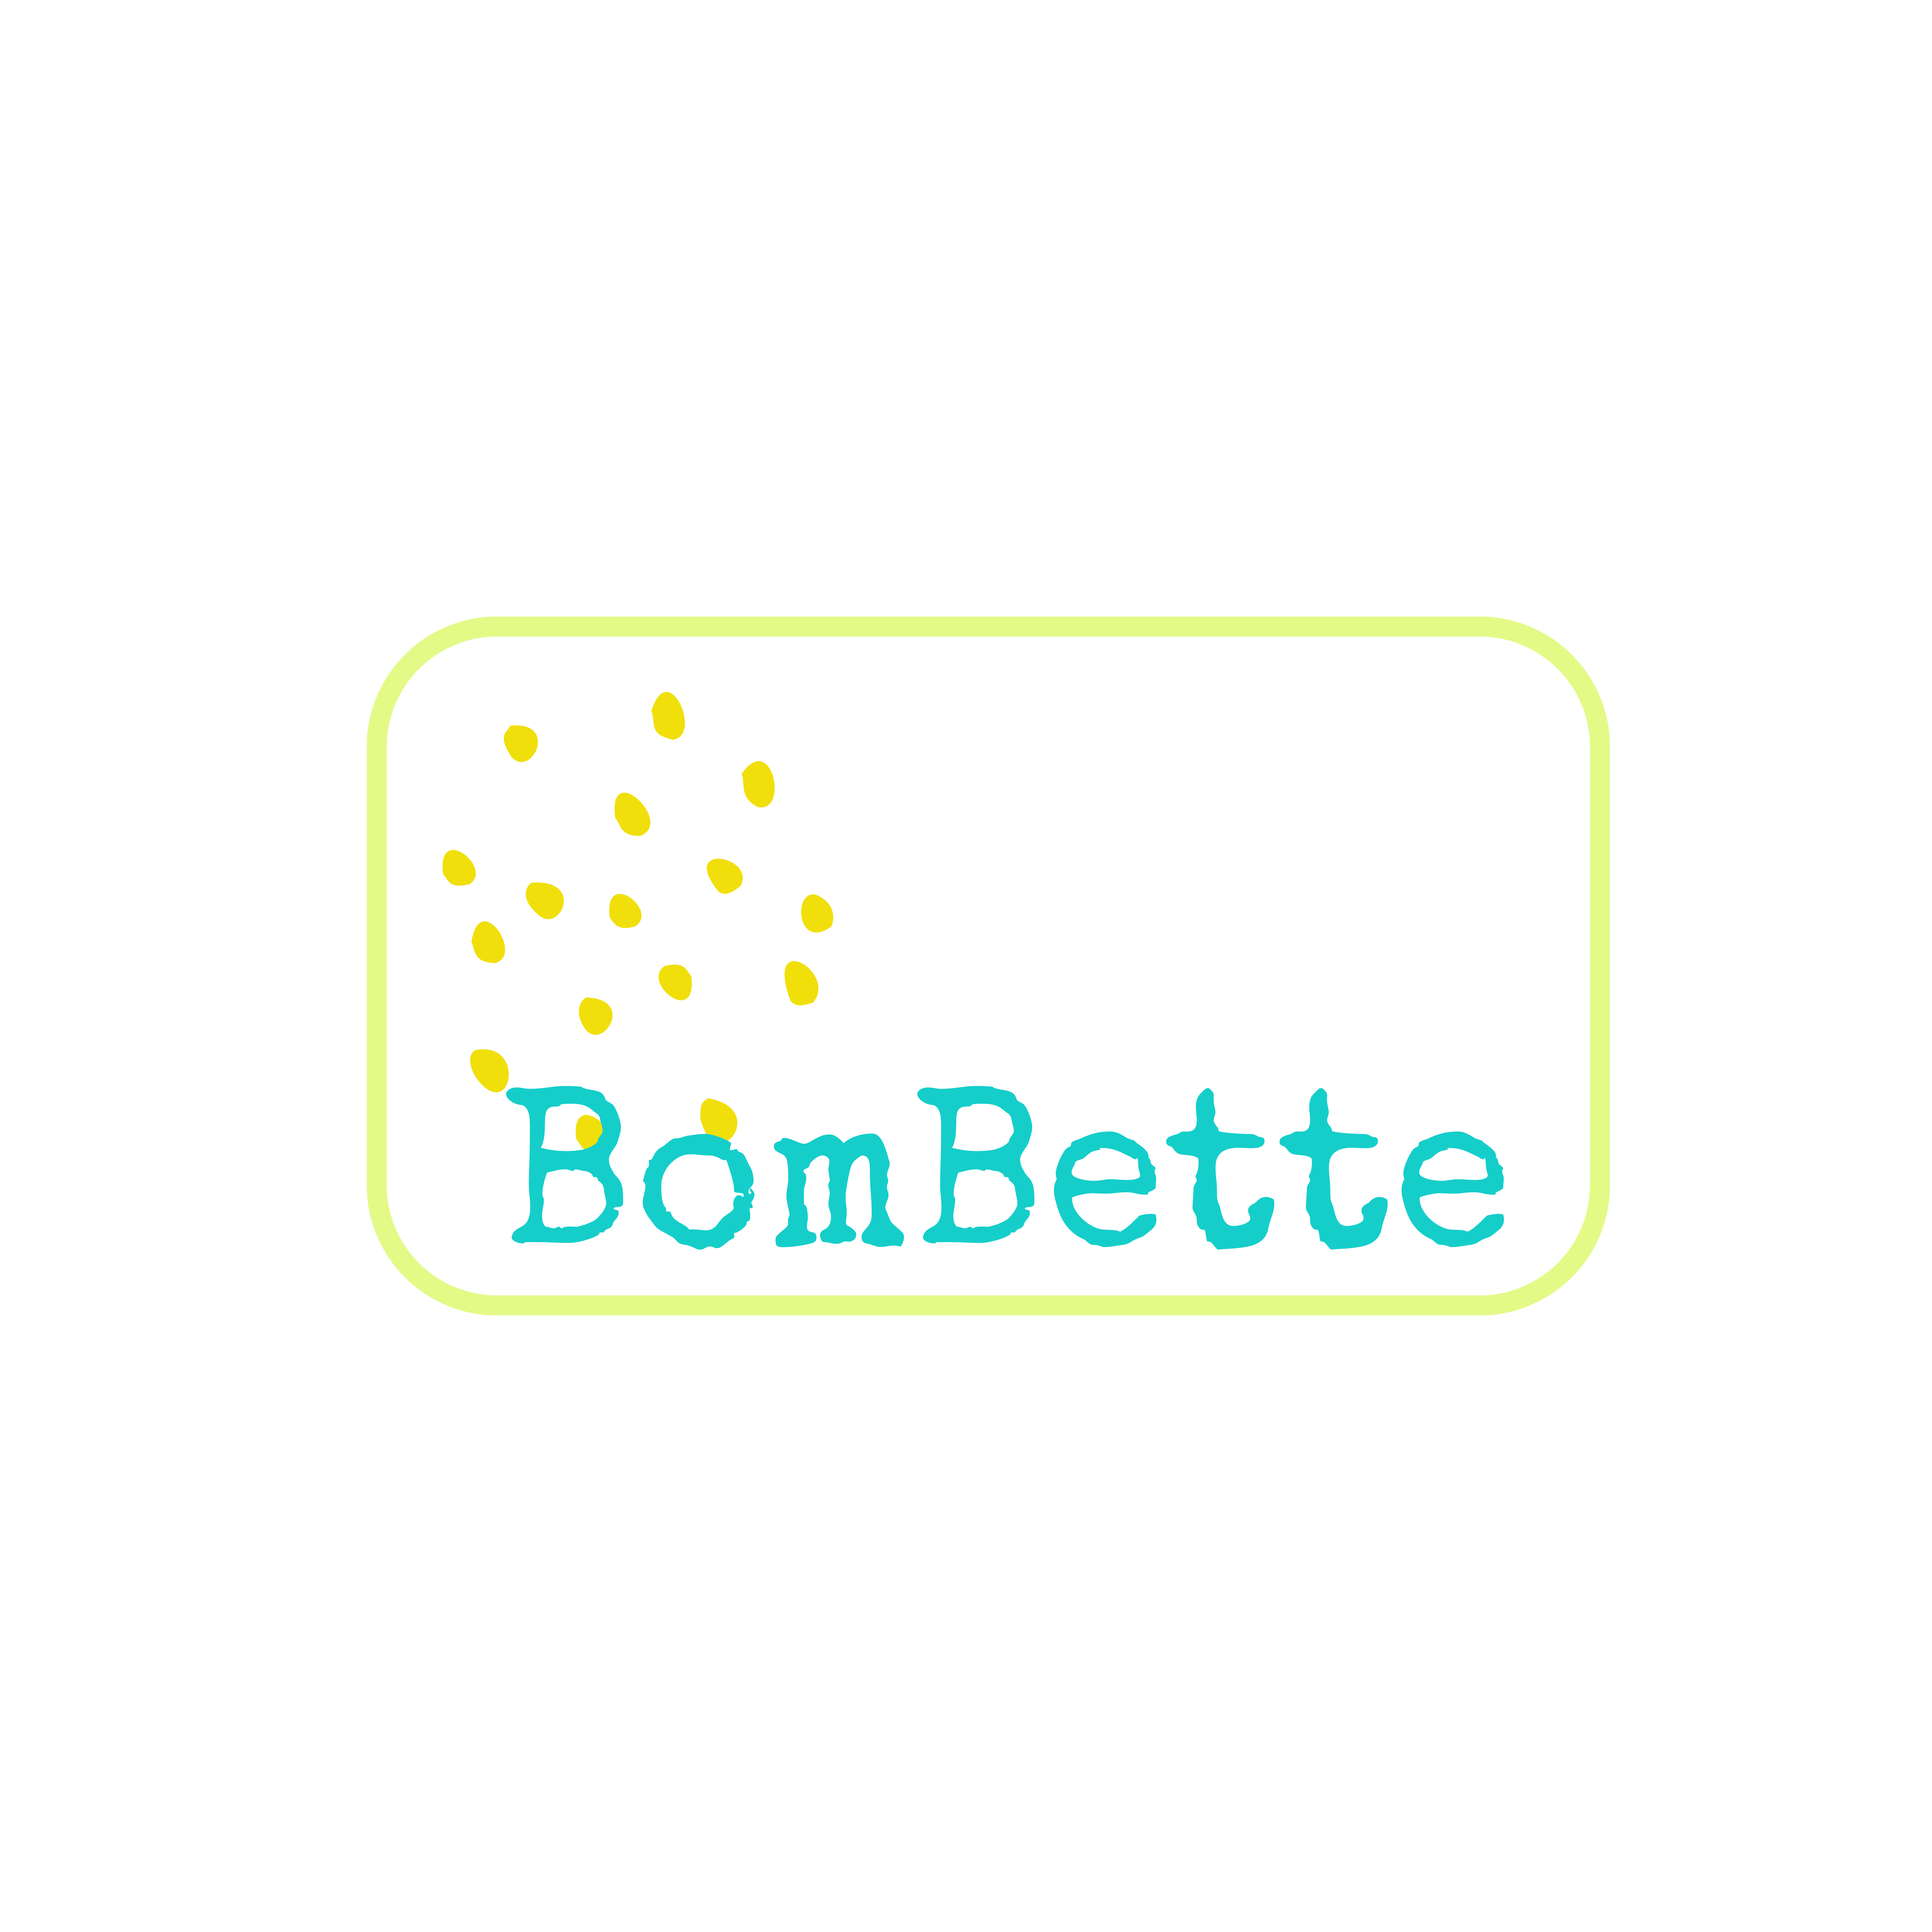 Launch of BomBette